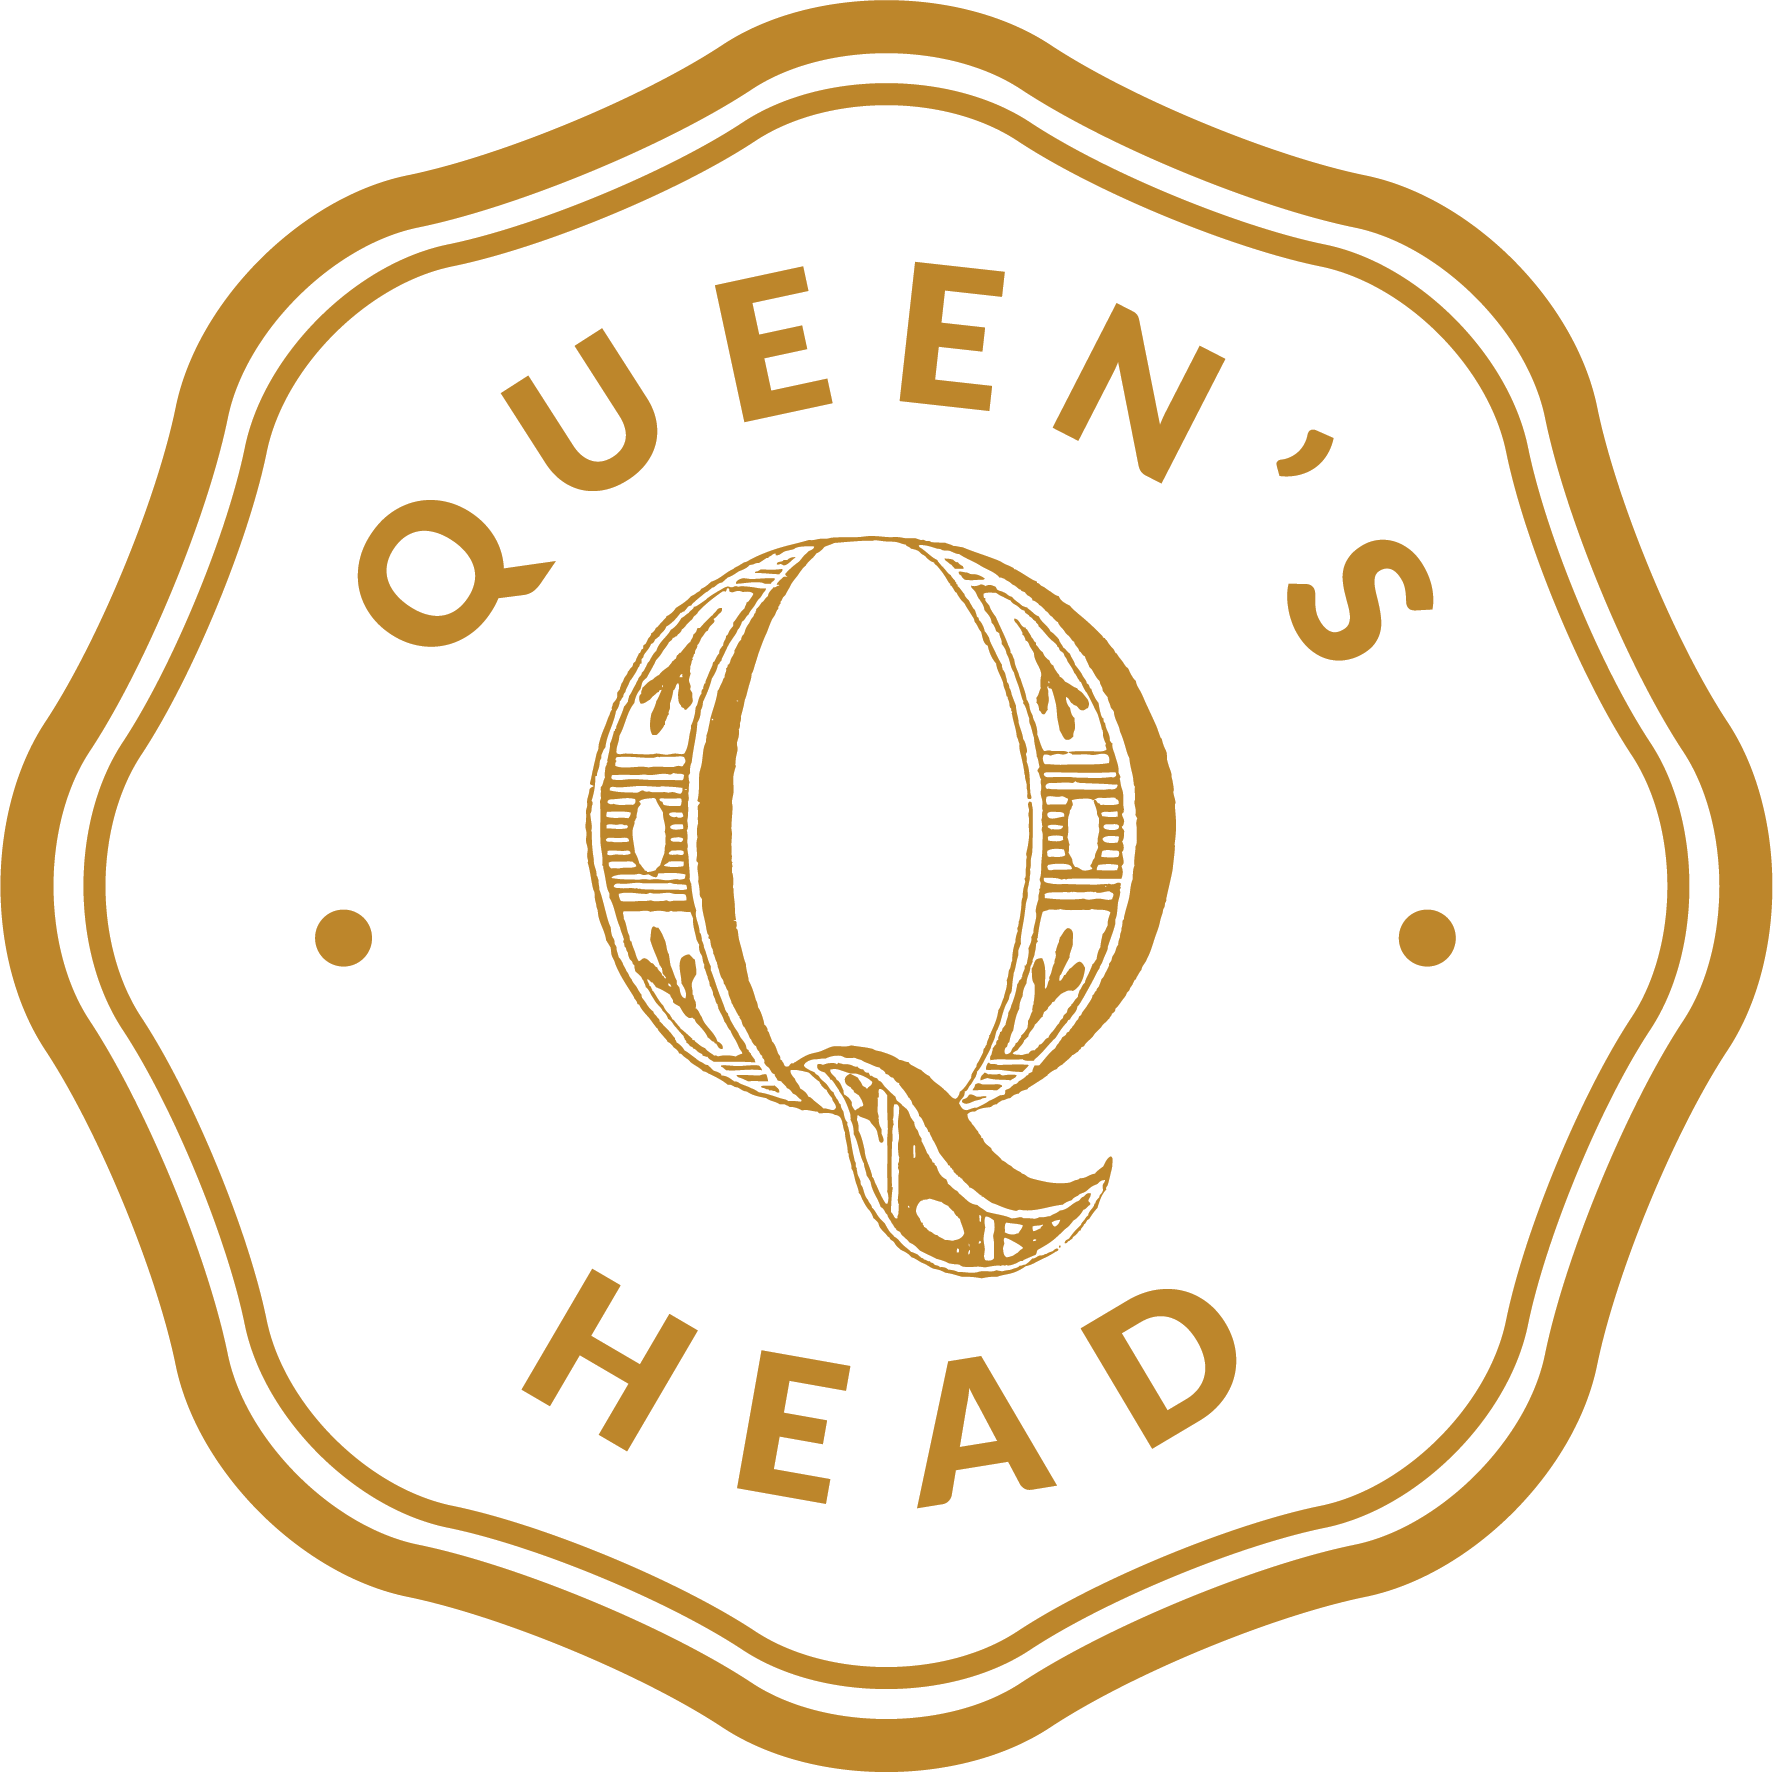 queenheadslogo.png